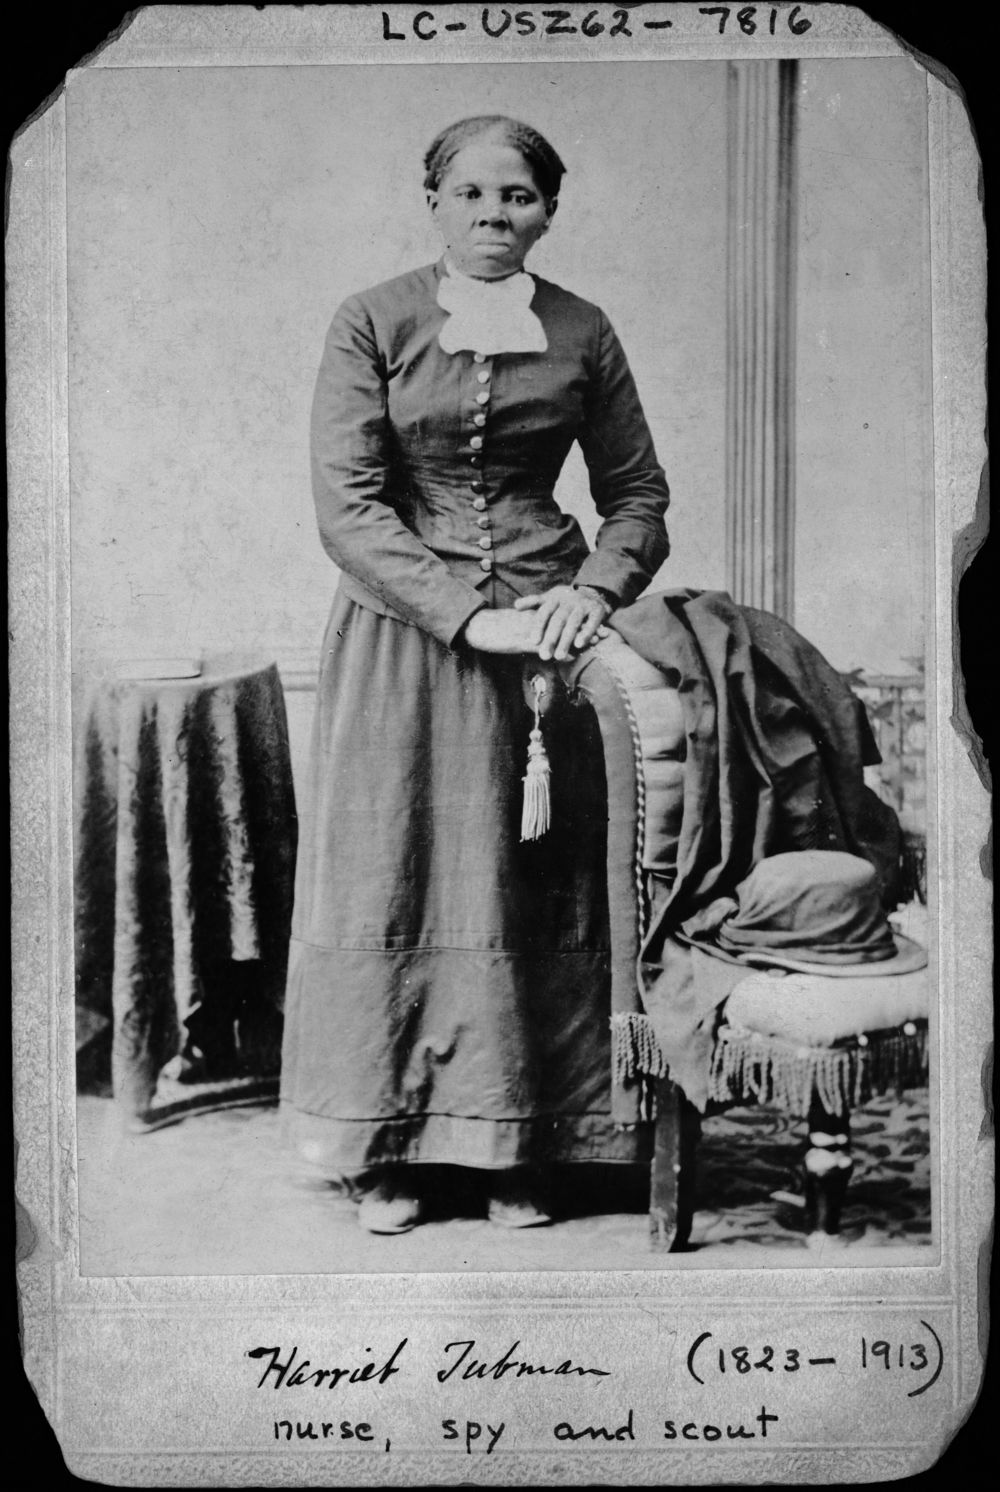 Harriet Tubman—nurse, spy and scout.